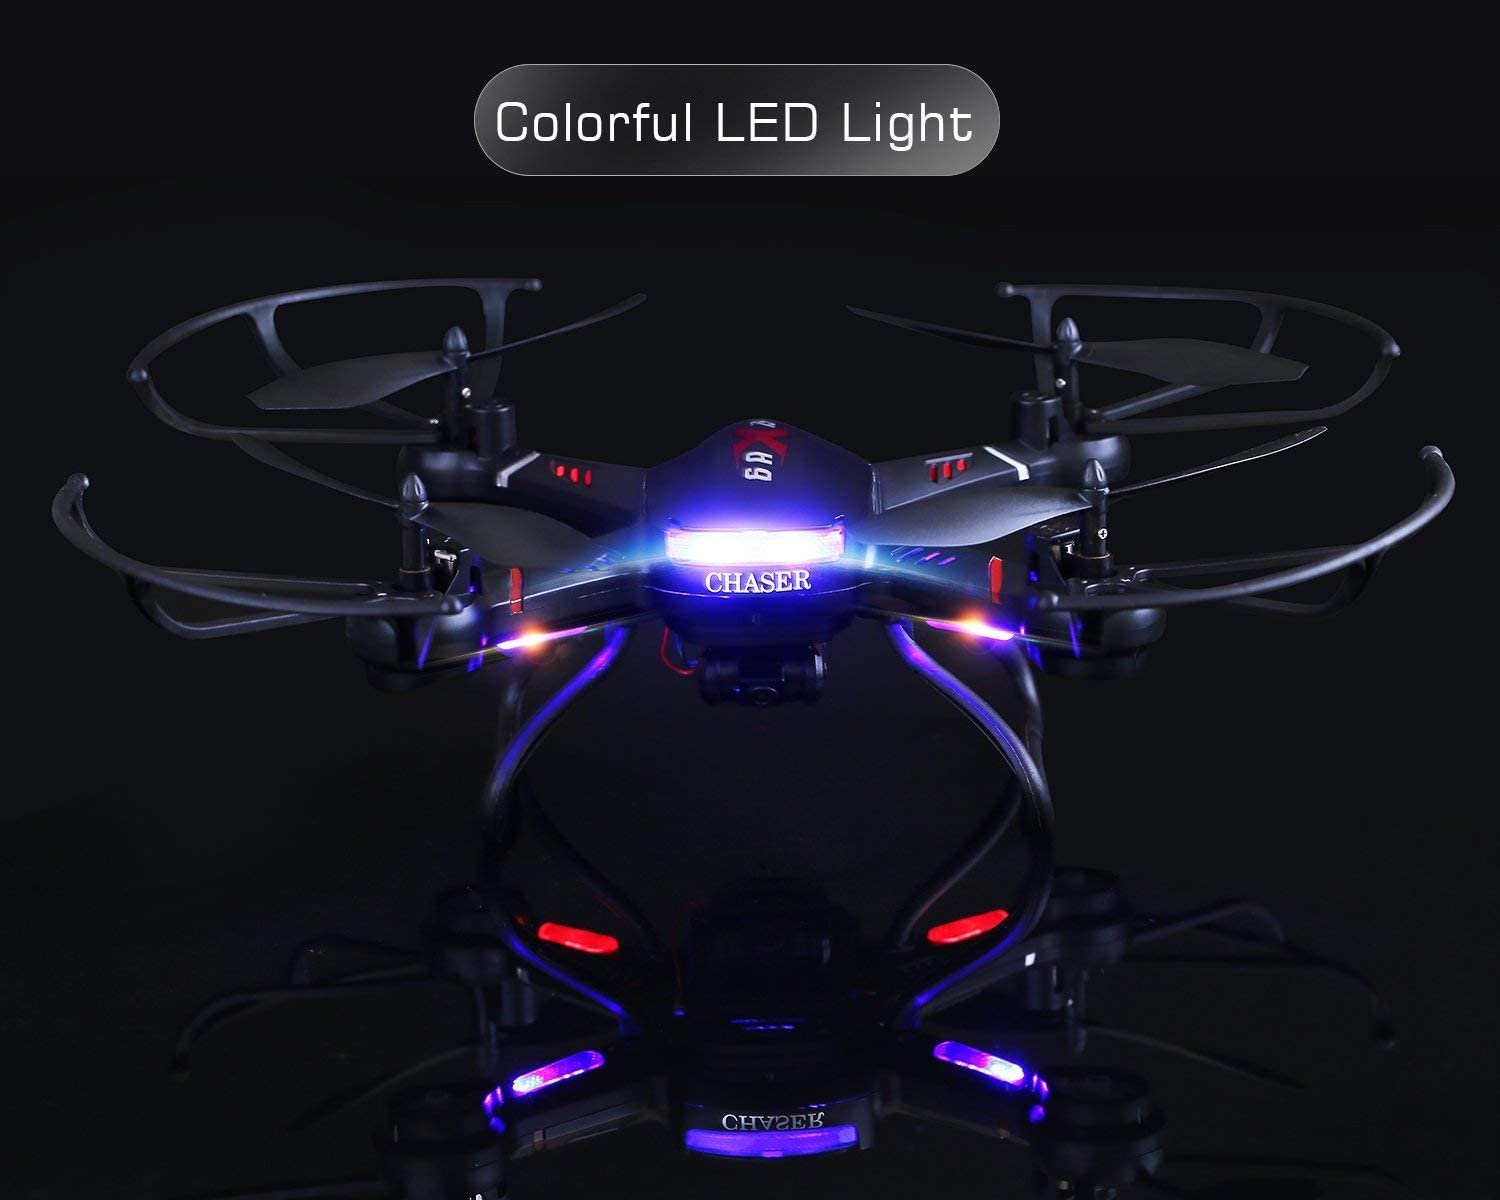 Holy Stone F181W WIfi Fpv Drone offers excellent LED lights